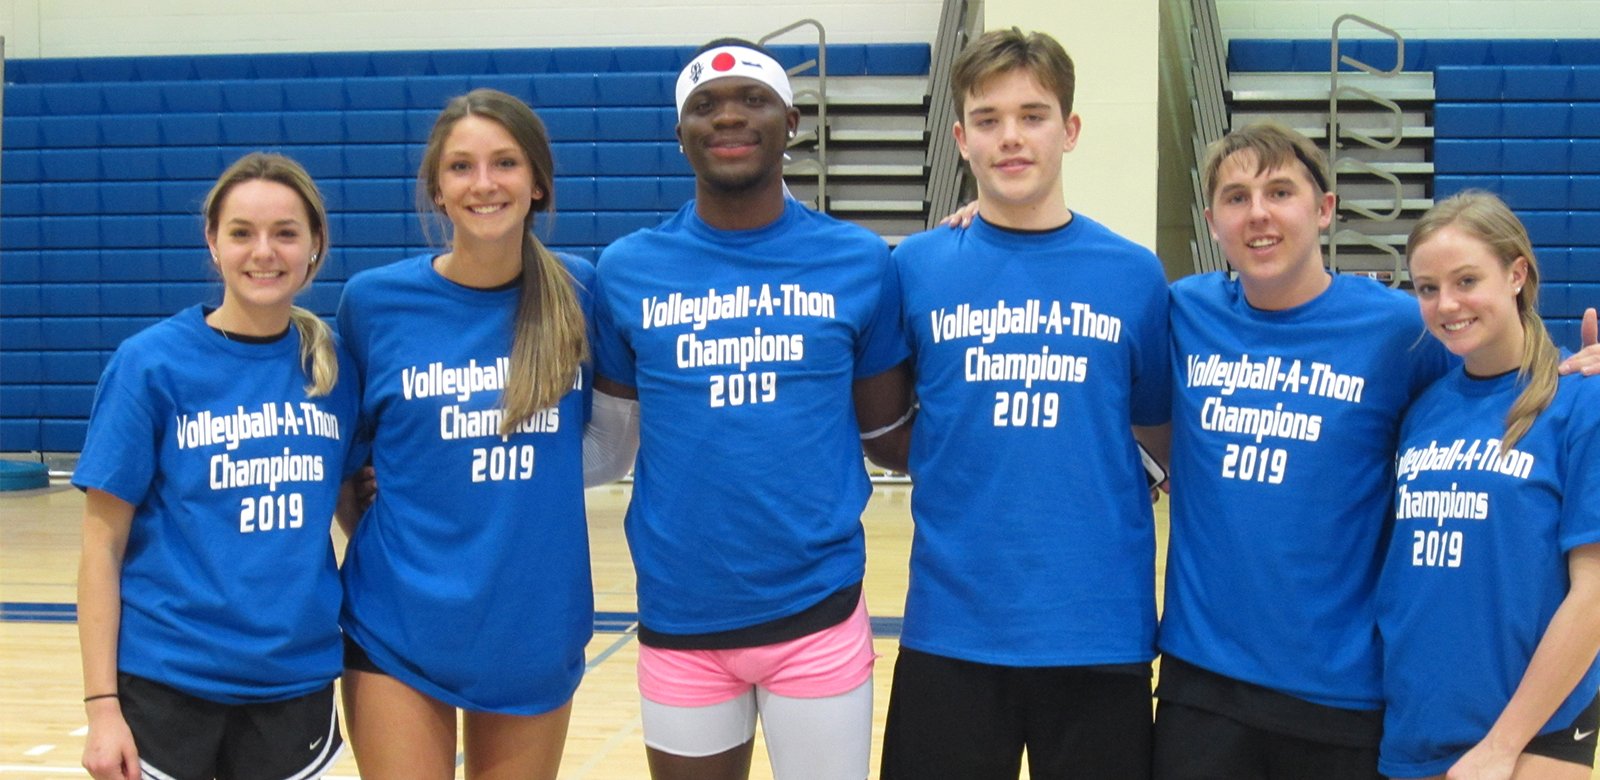 Charity Volleyball-A-Thon